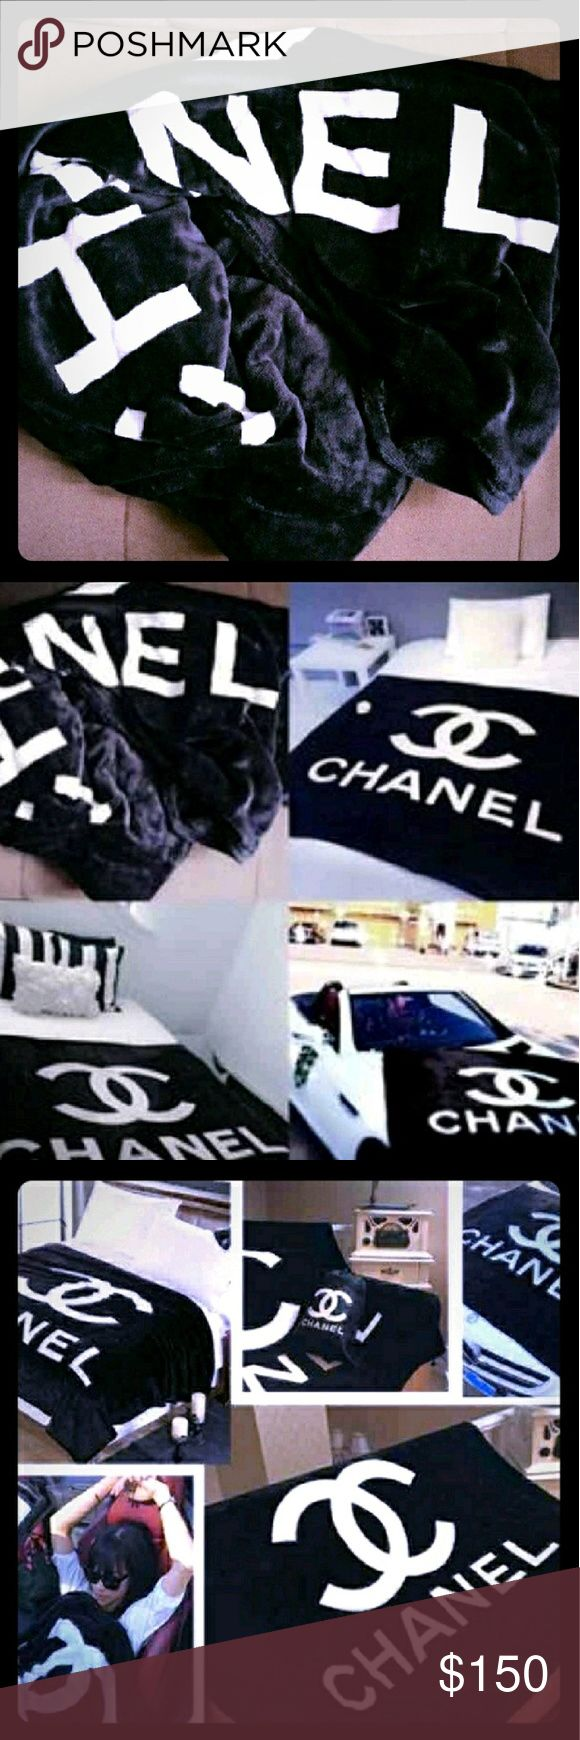 """🚨SALE! HTF CC Chanel VIP blanket(XL sz 70"""" x 80"""") 😡 PRICE IS FIRM UNLESS BUNDLED, NO OFFERS PLEASE!😡   💃💃Save BIG with my 20% off 2 or more items bundle discount 💣💥    😱Hurry up before they're gone! This listing is for the XL sz blanket(fits on a queen sized bed approx 70"""" x 80"""")*SEE OTHER LISTINGS FOR LG SZ* Wrap yourself in exquisite LUXURY in this sensationally SOFT CC VIP Chanel blanket!💥Get em while you still can!!💥😱These are AUTHENTIC VIP GIFT ITEMS! Comes with dust bag…"""